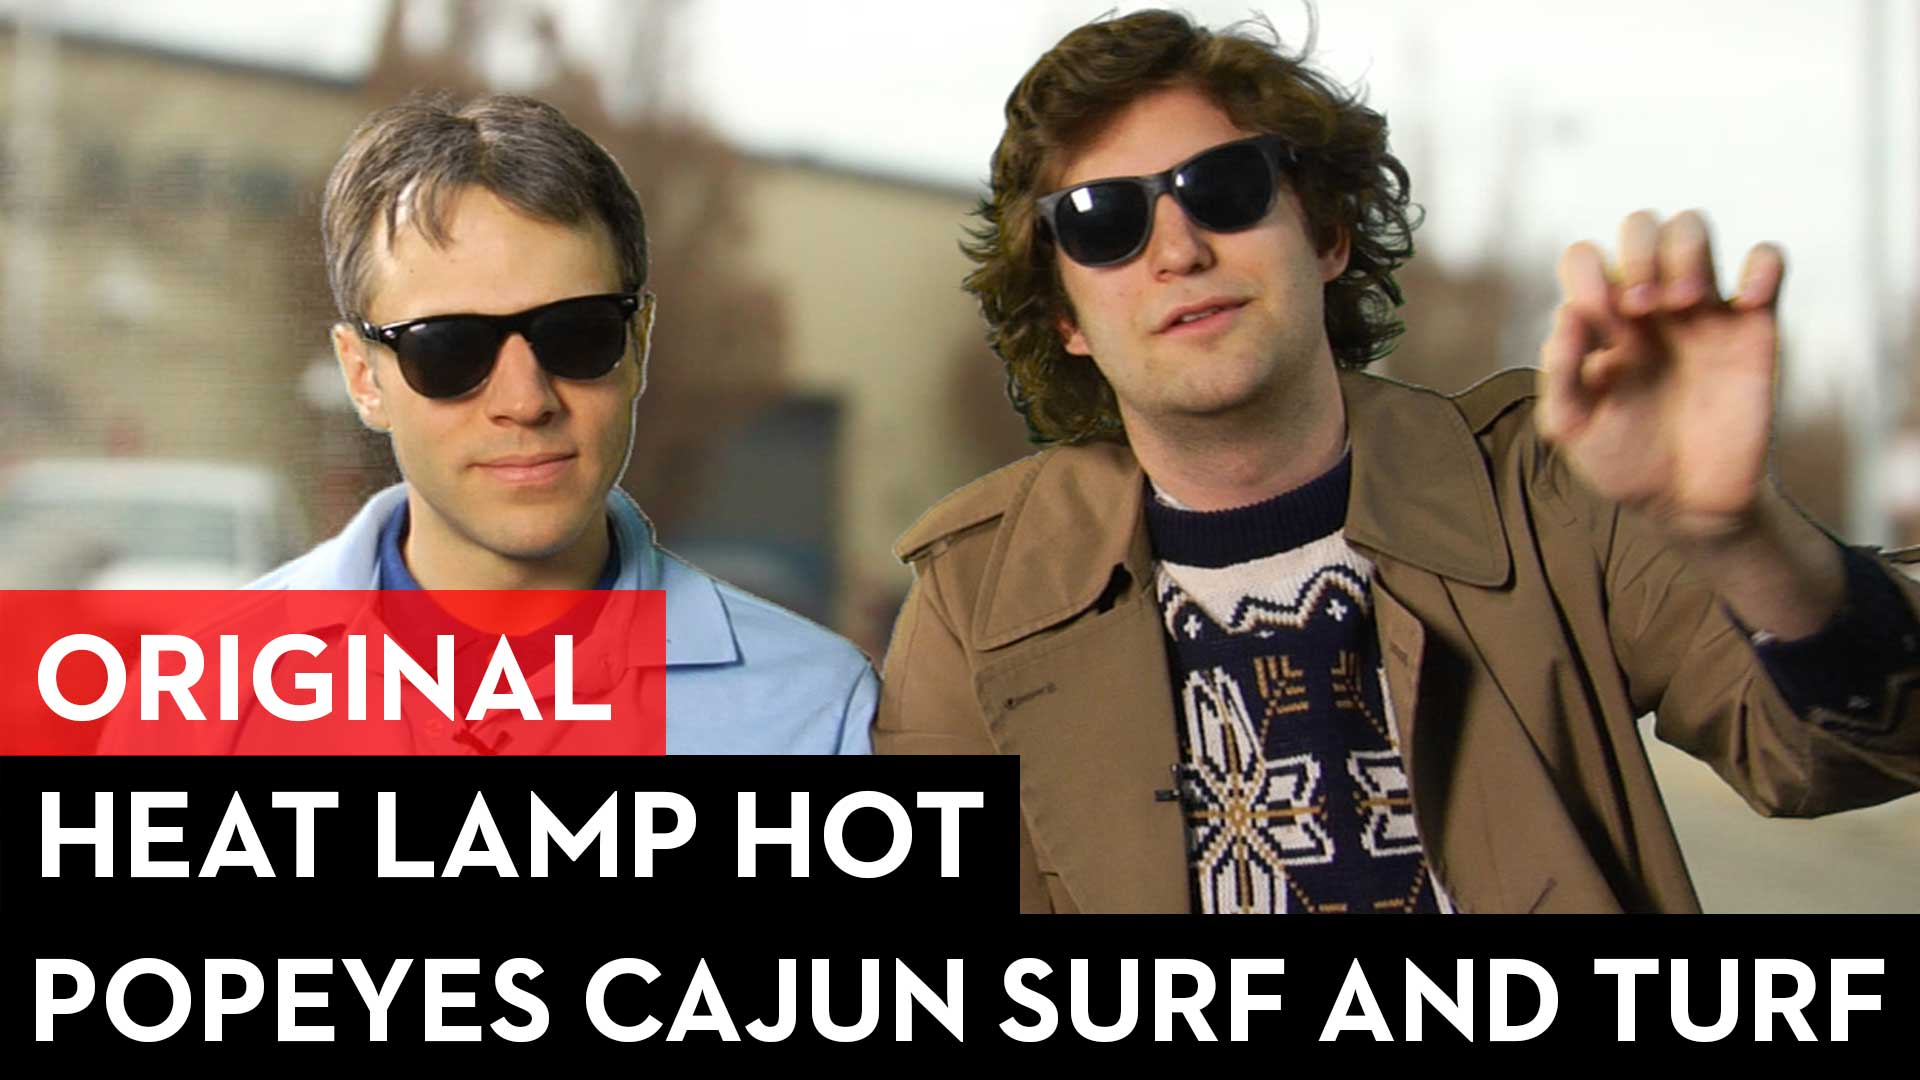 Popeyes Cajun Surf and Turf Review: Heat Lamp Hot Episode 4